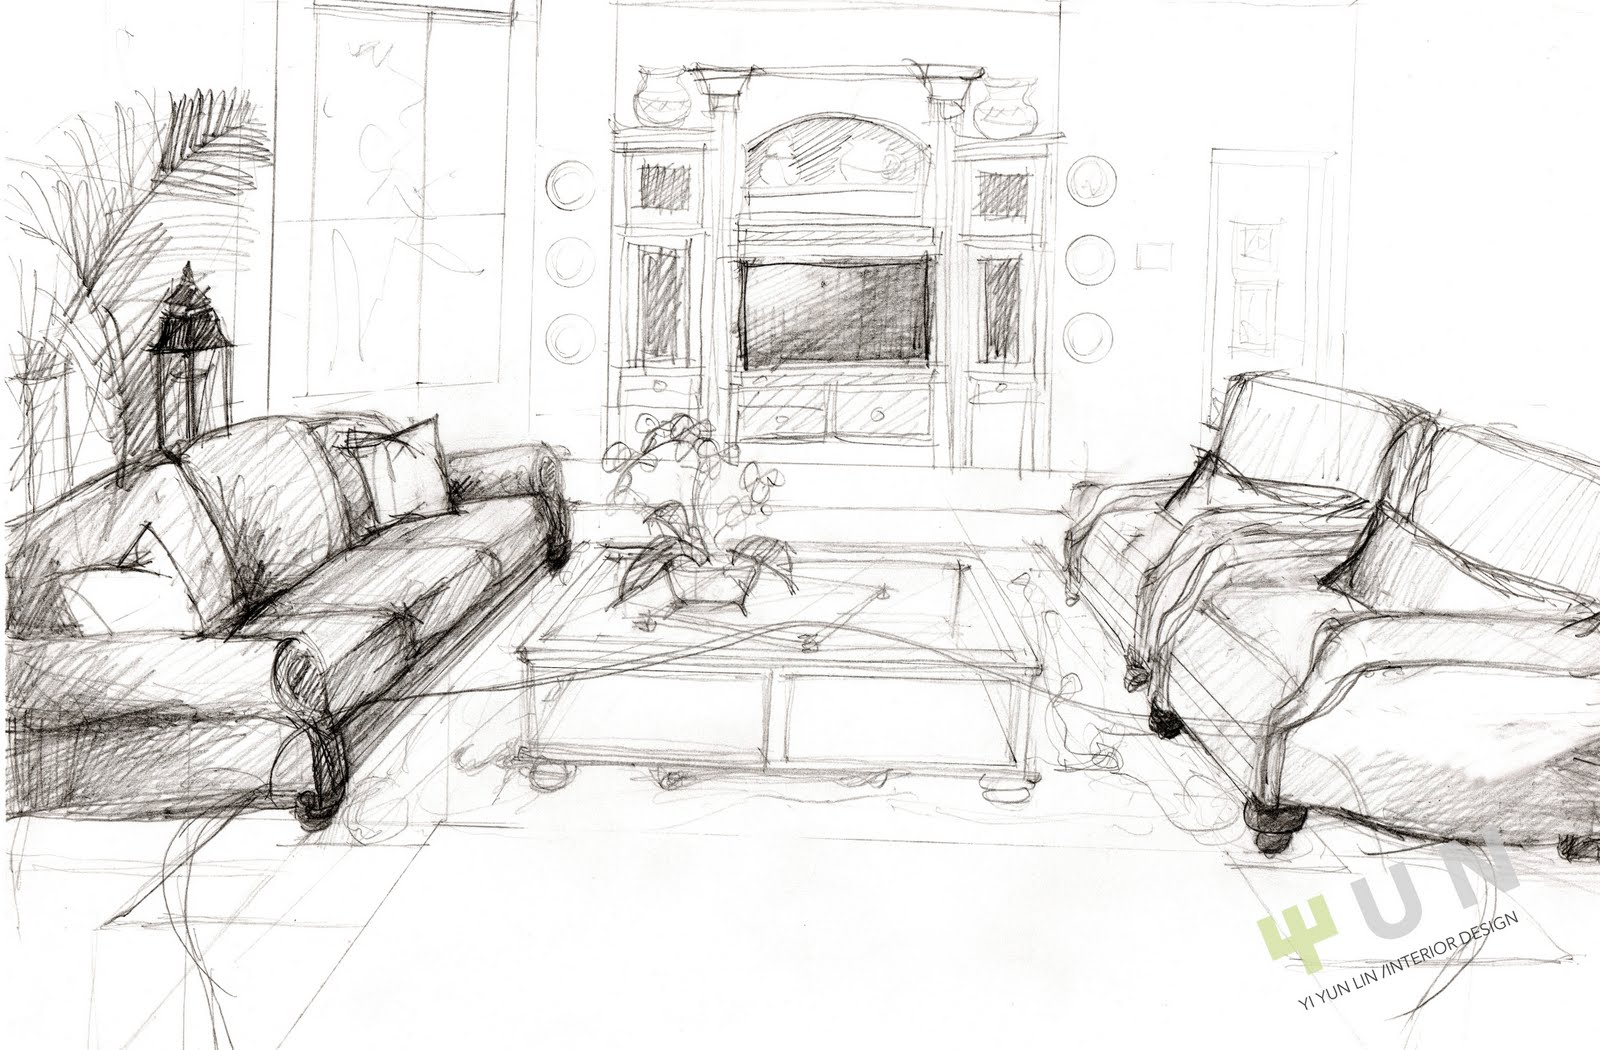 interior design sketches - Interior Design Sketches